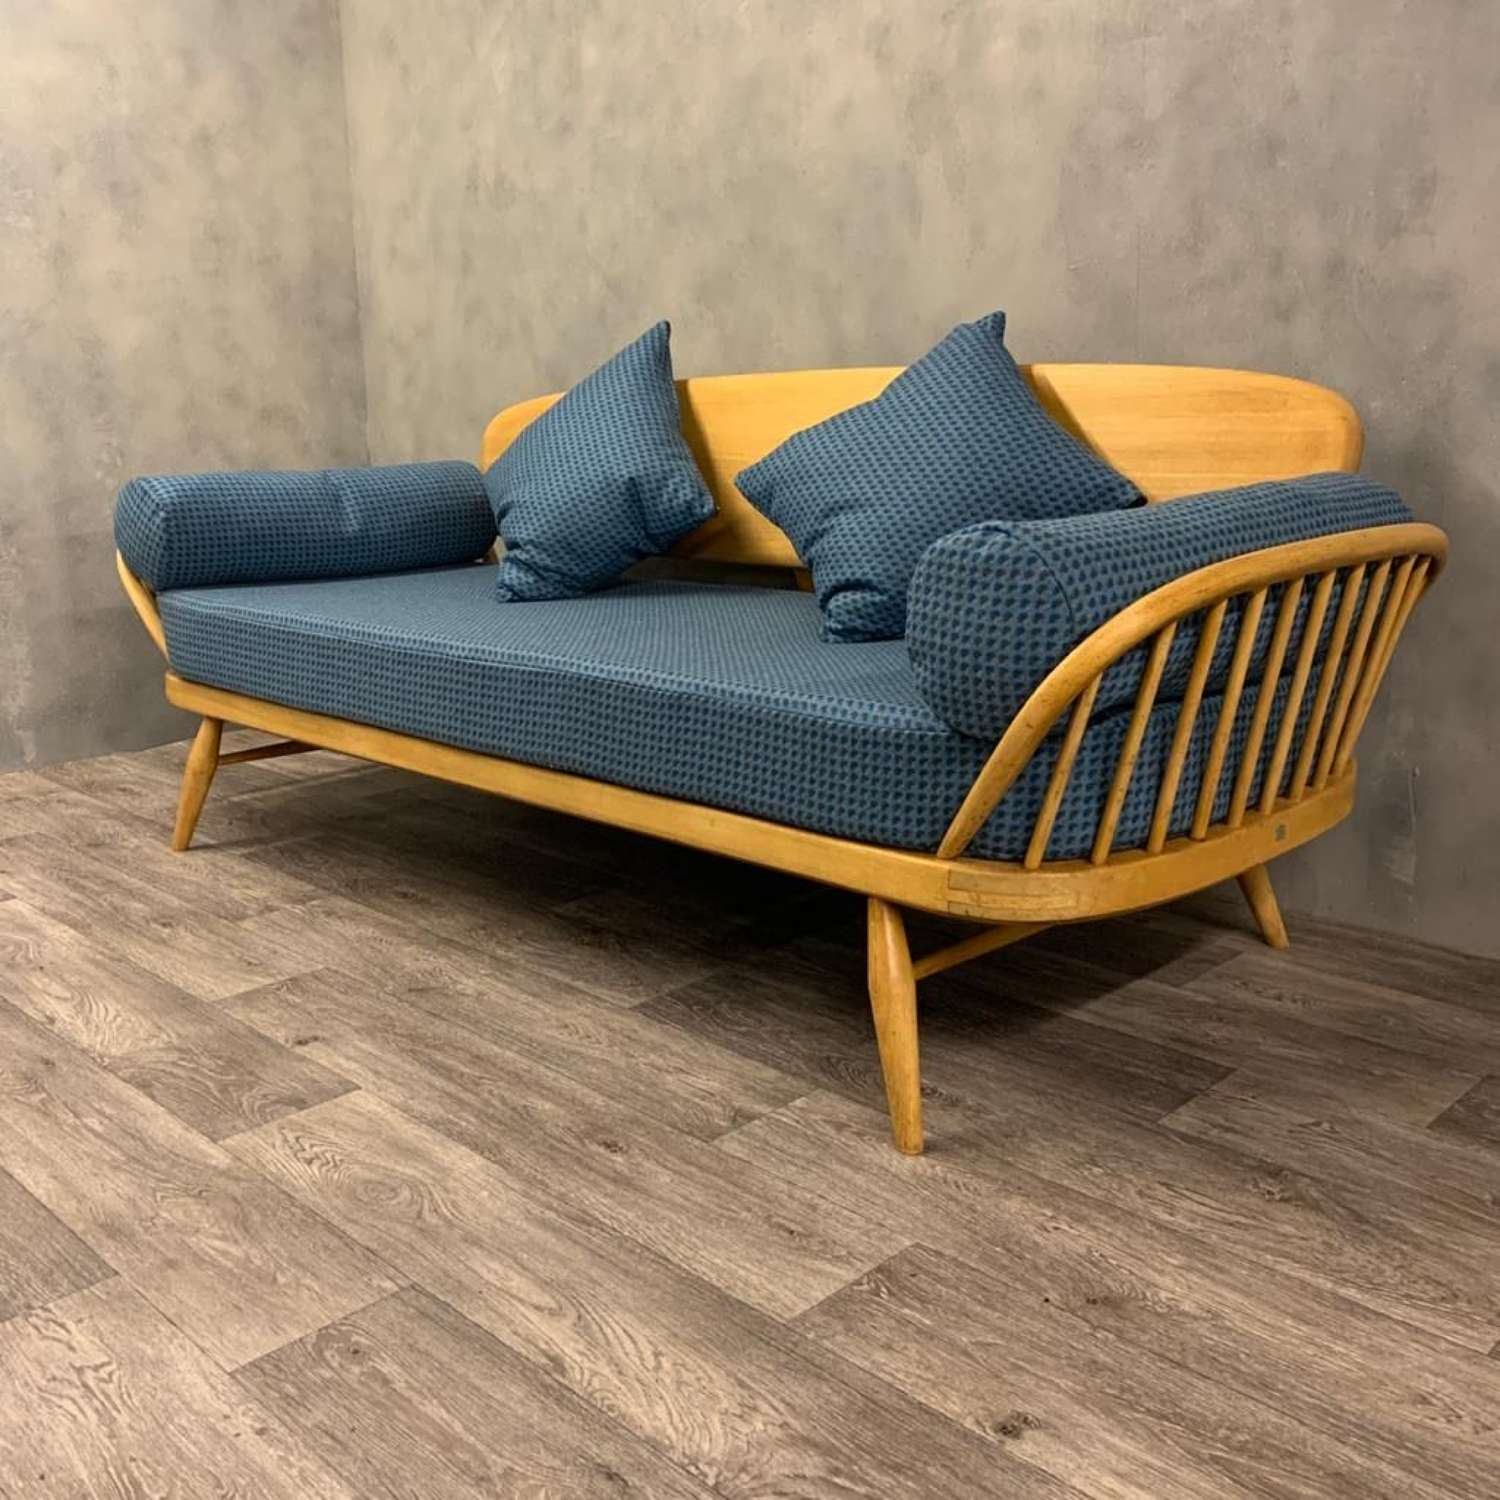 Midcentury Ercol studio couch sofa daybed